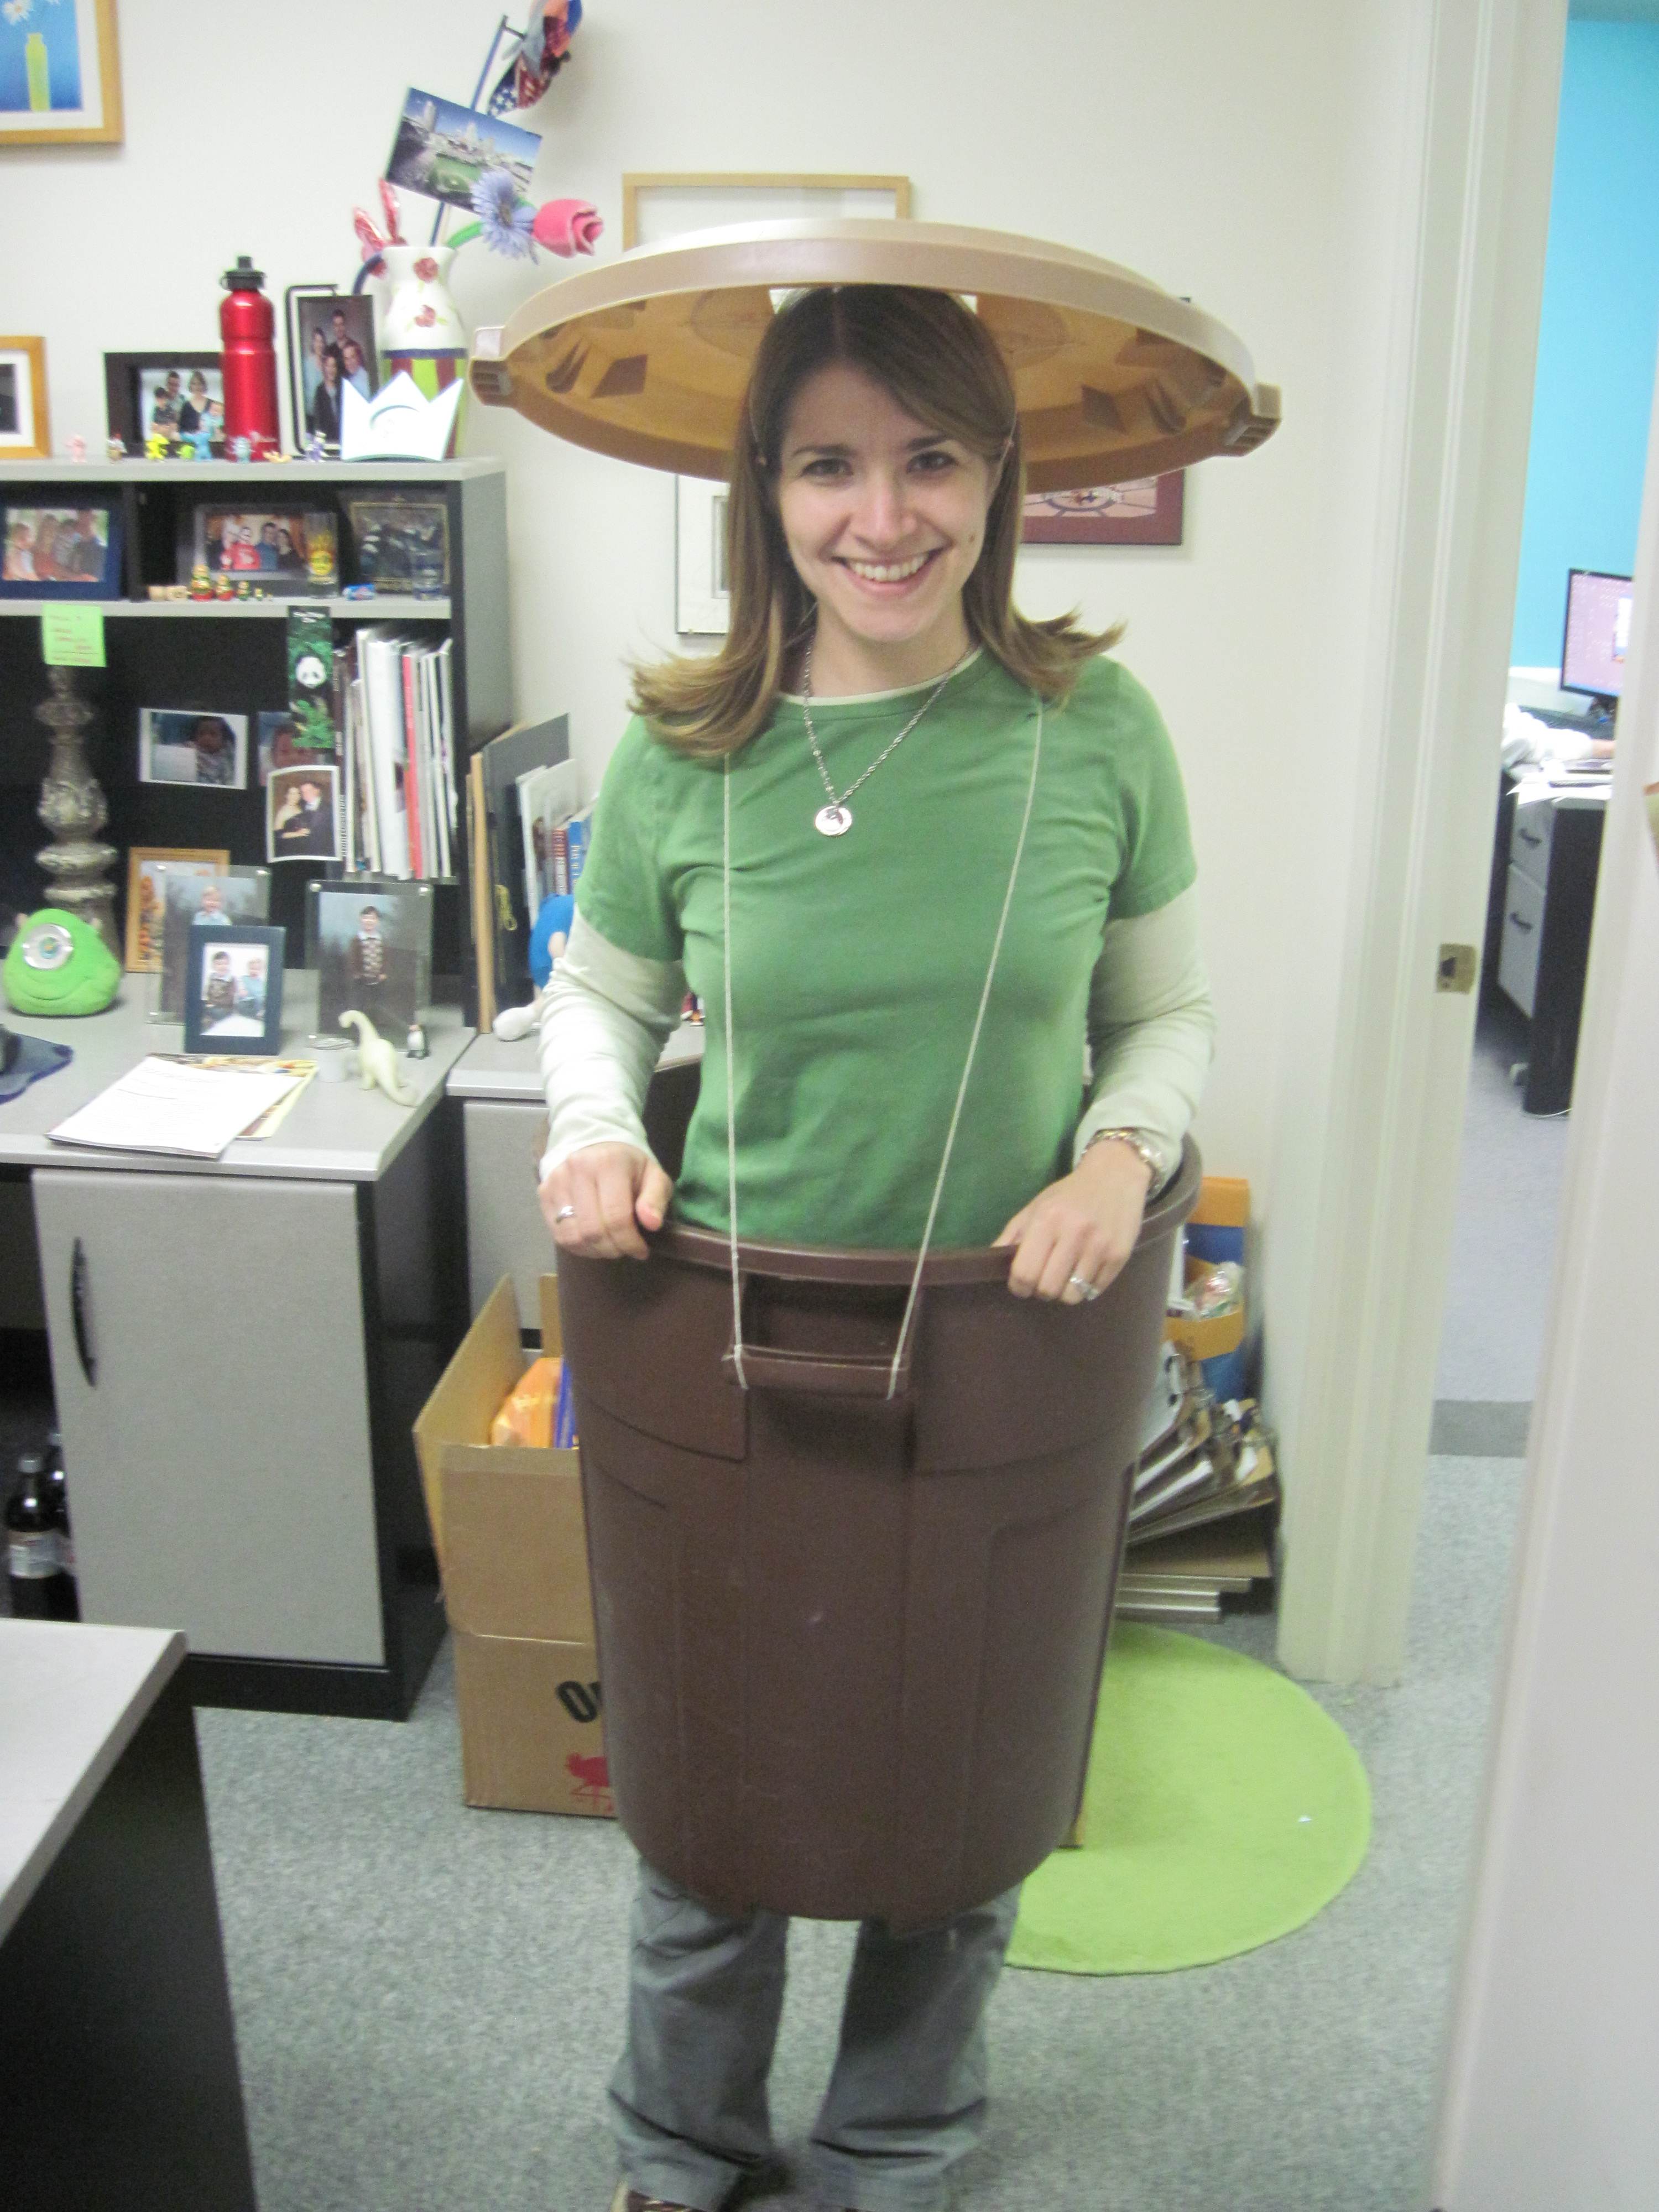 Halloween party ideas do it yourself costumes daily party dish oscar the grouch diy halloween costume solutioingenieria Images